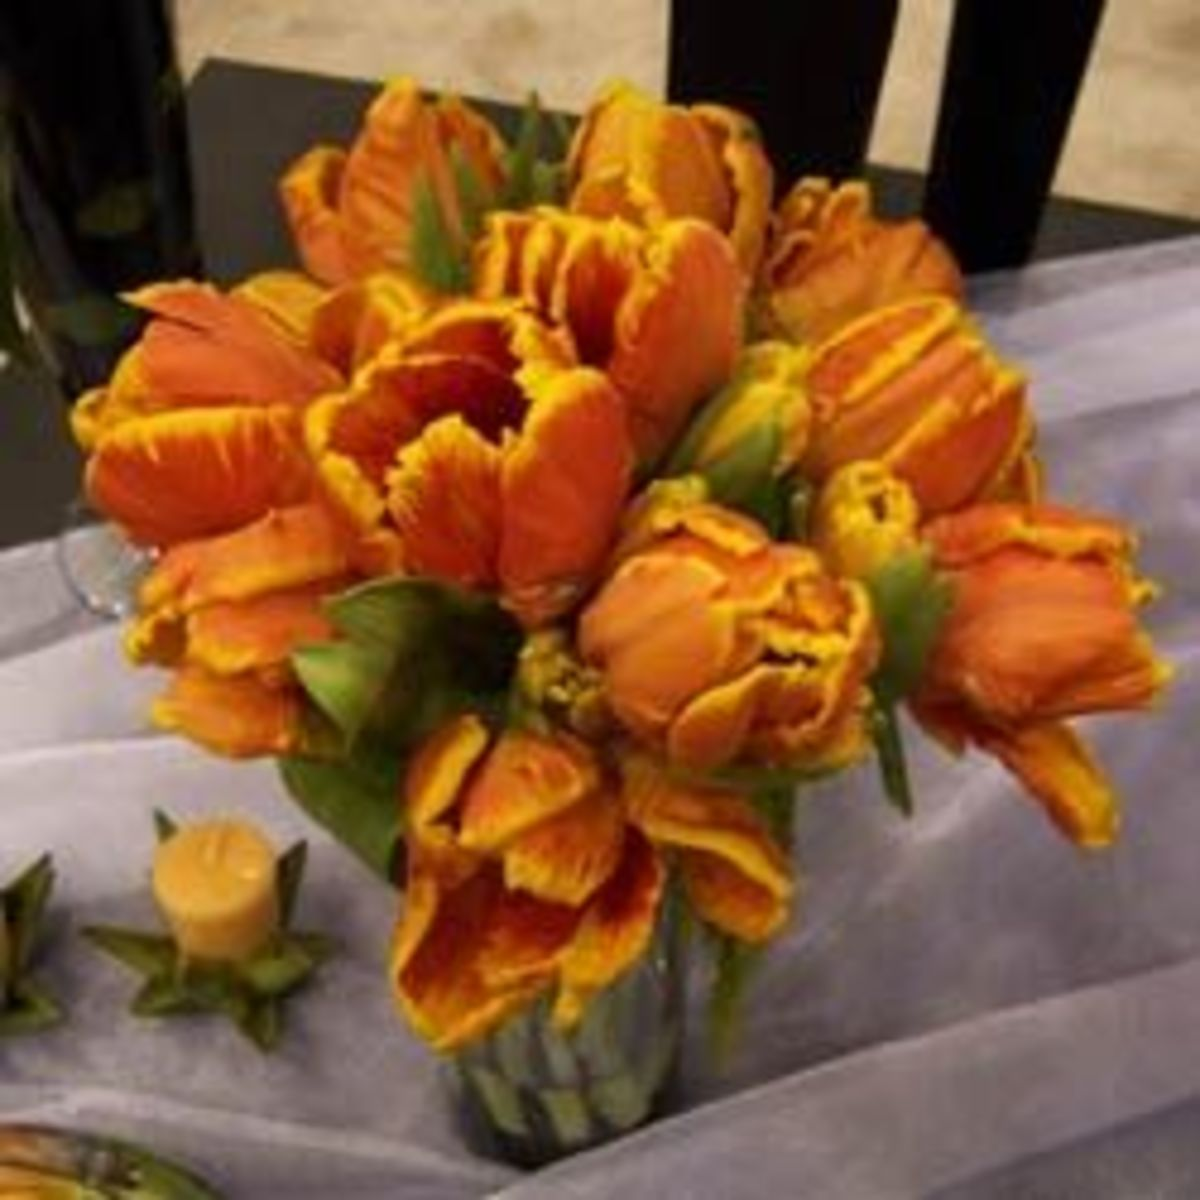 This tulip bridal bouquet can be set in a vase to decorate the head table during the reception.